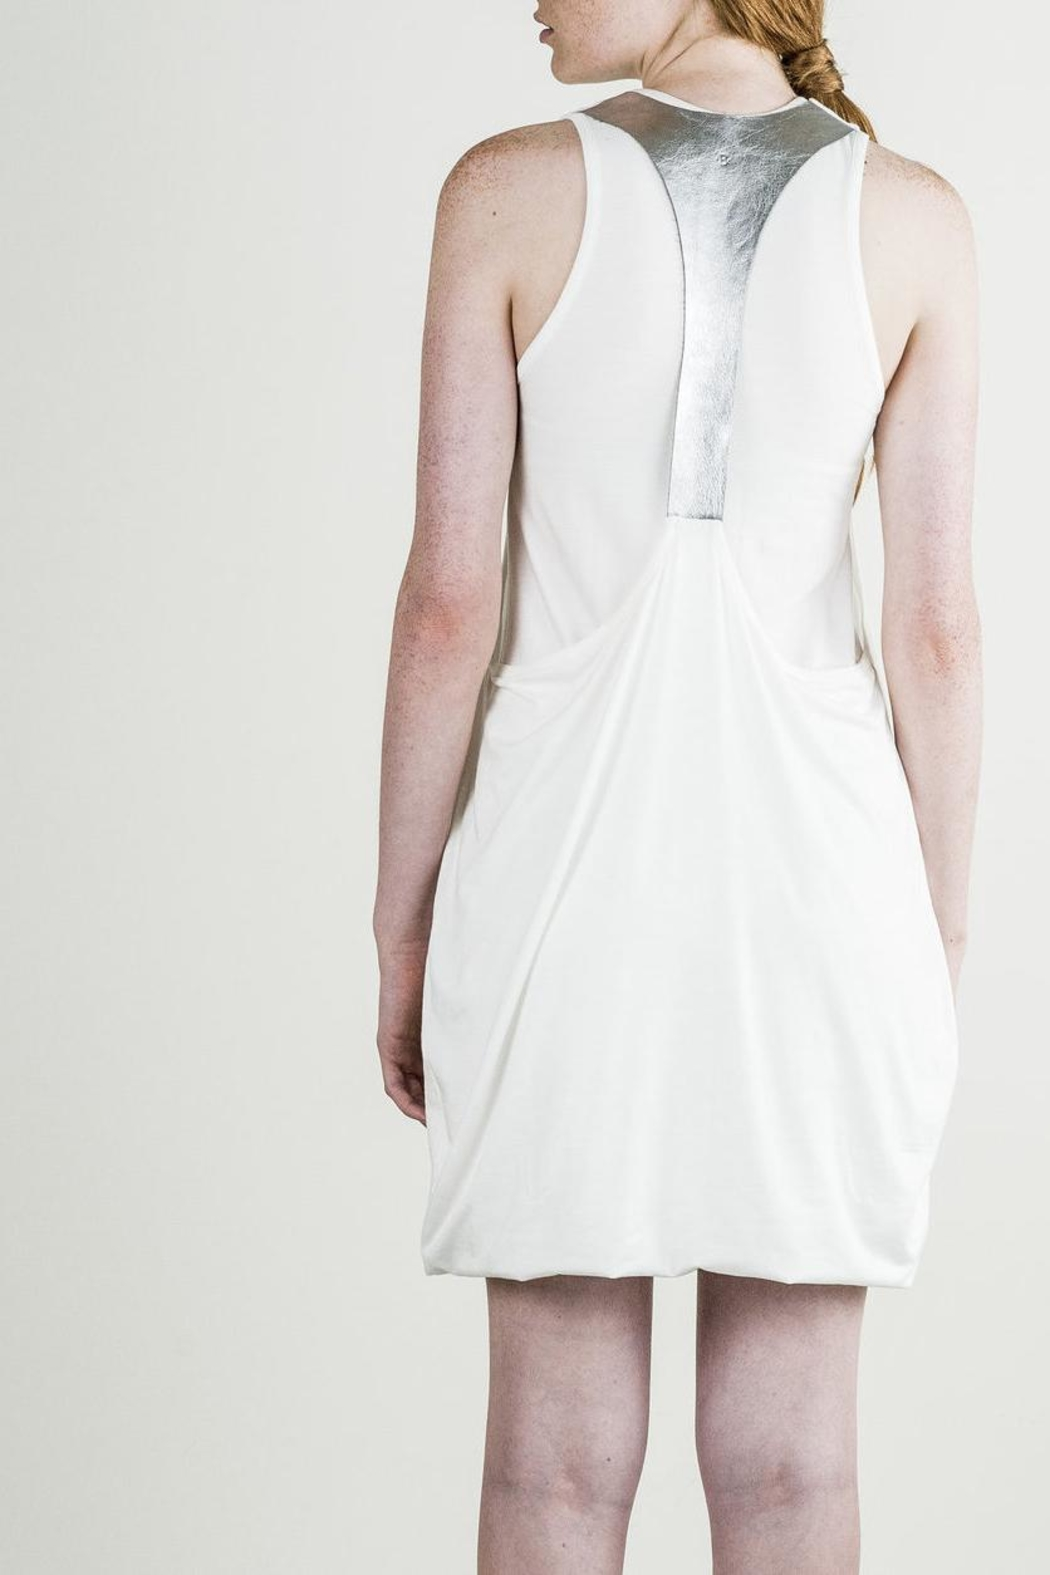 Bodybag by Jude Jersey Sleeveless Dress - Front Full Image